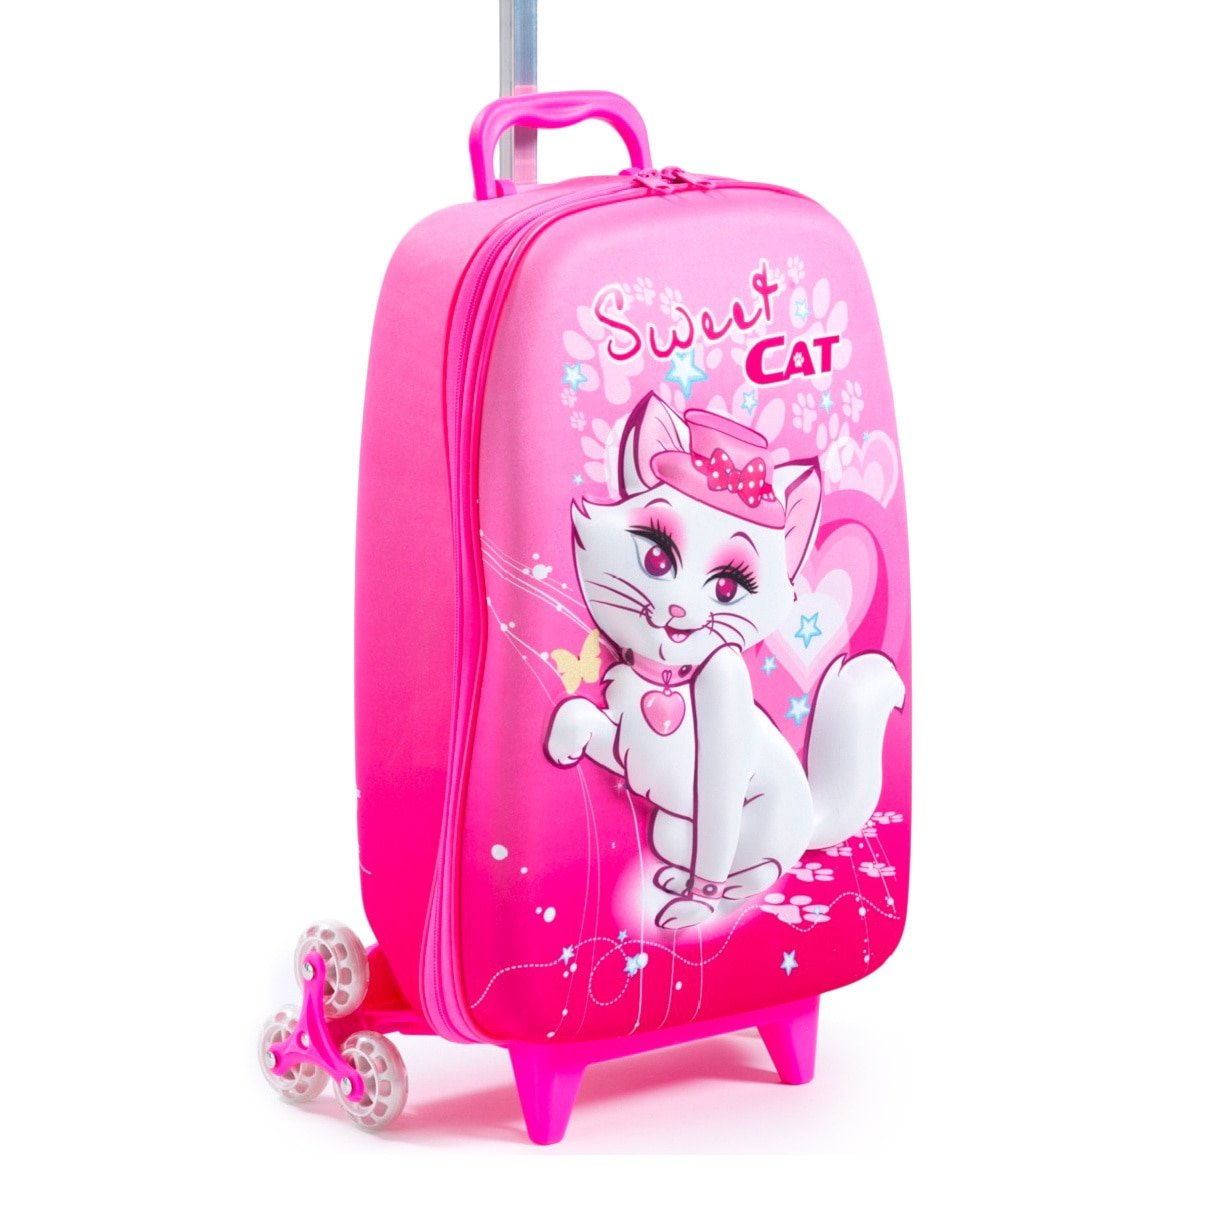 Girls Pink 3D Cute Face Sweet Cat Theme Wheeled Upright Rolling Suitcase, Beautiful Cat Lovers, Pet Animal, Cat Paw Print Carry on, Travel Wheeled Suit Bag with Wheels, Wheeling Luggage, Fashionable